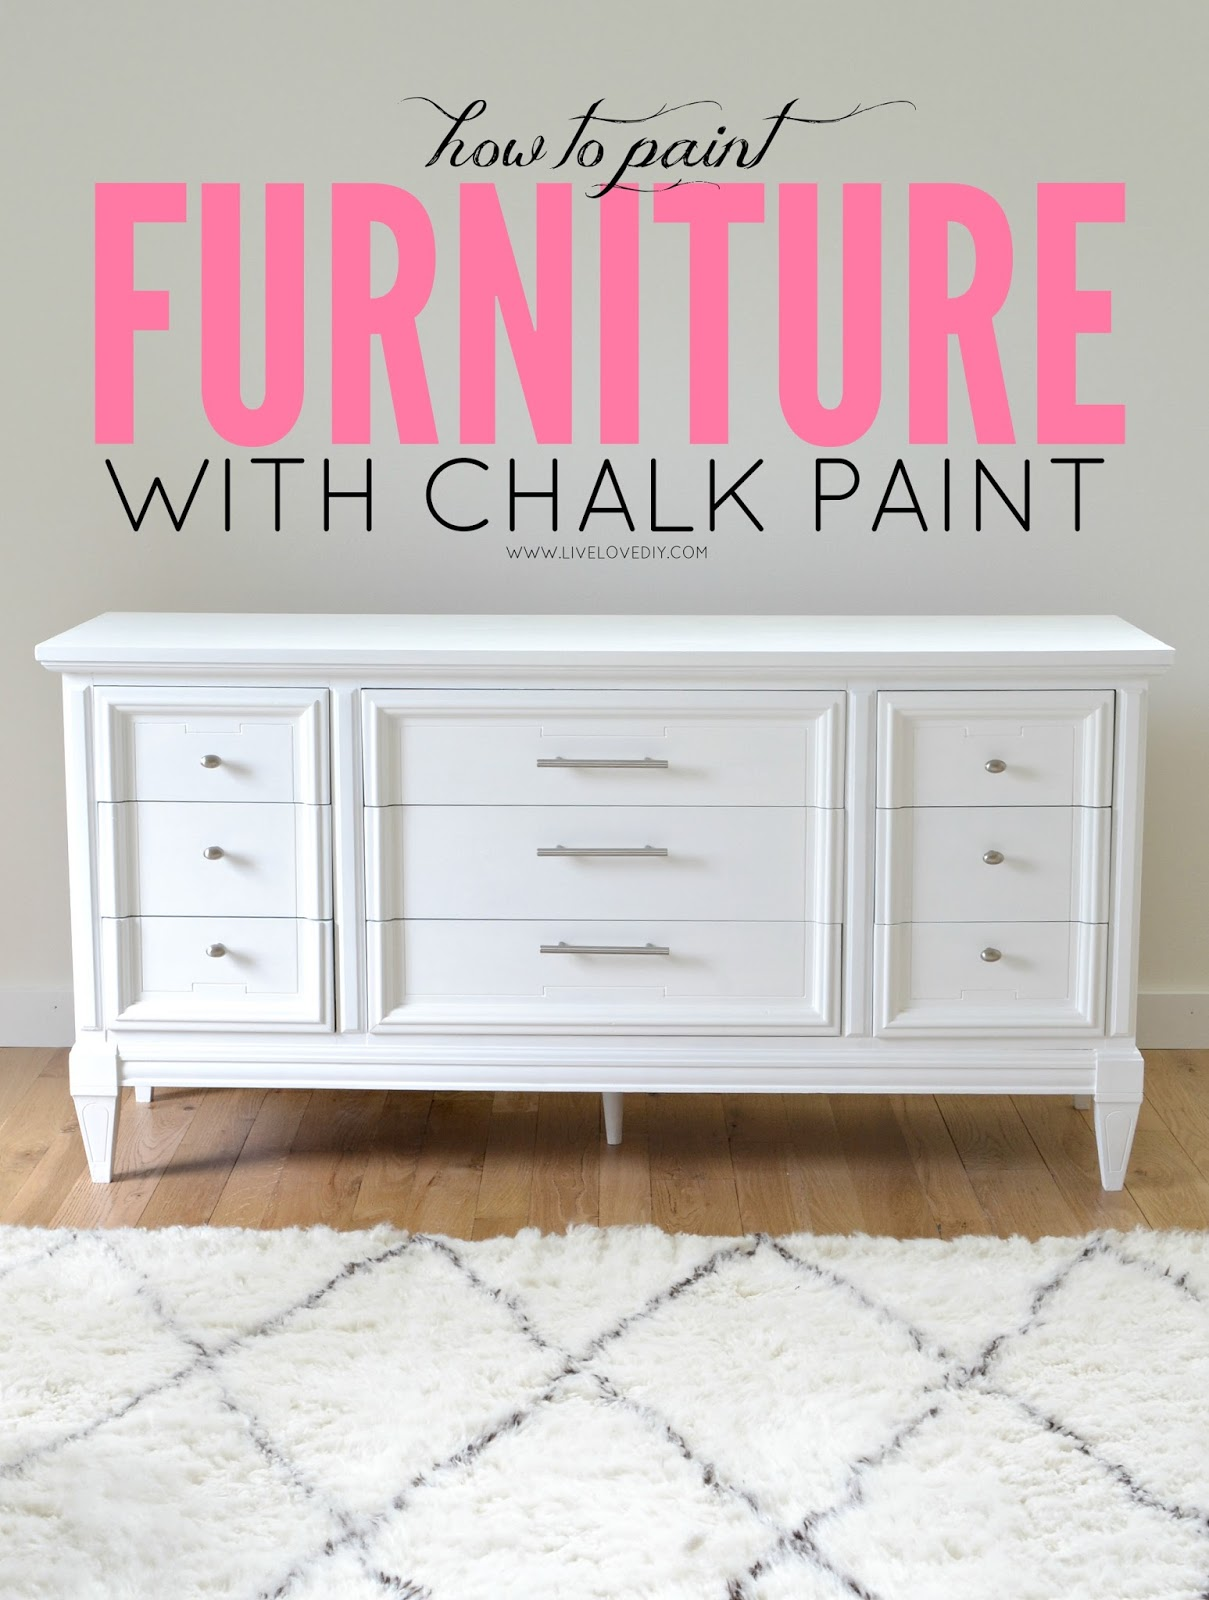 How To Paint Furniture Livelovediy How To Paint Furniture With Chalk Paint And How To